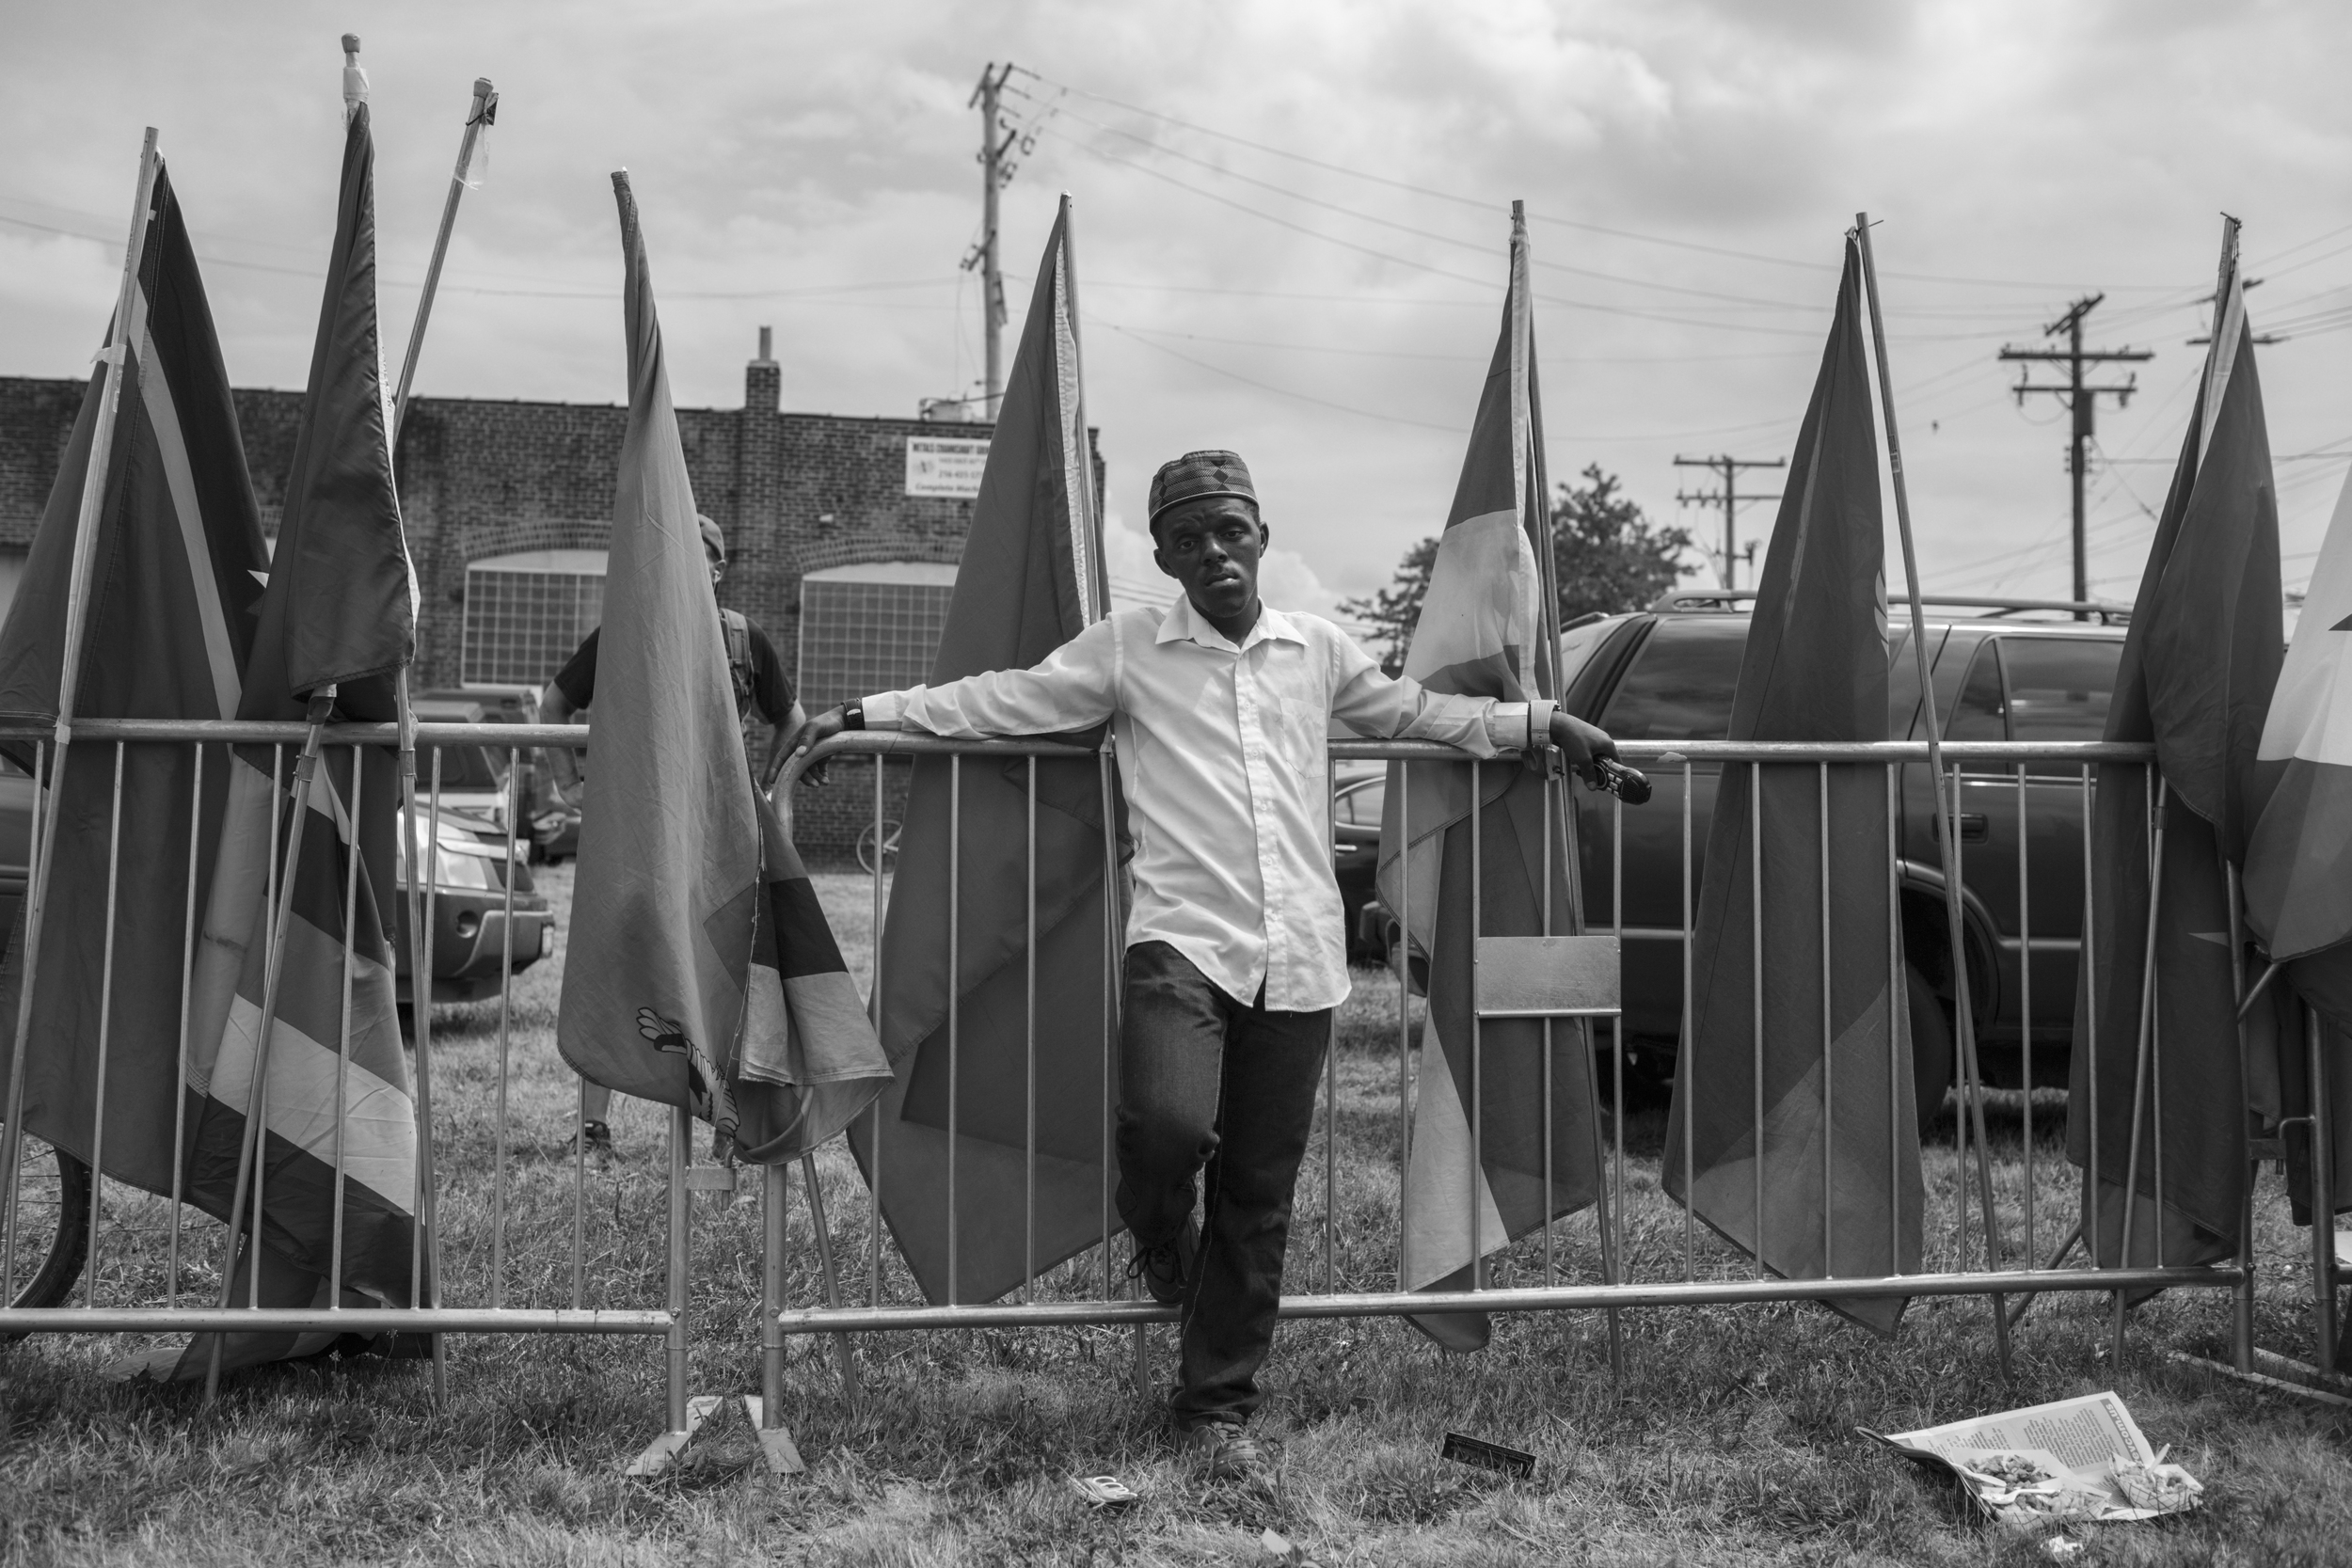 """18 July 2016 - Cleveland, Ohio - Enwar Jr., activist with """"Peace in the Hood"""", is attending the """"End Poverty"""" rally in East Cleveland. The Republican National Convention kicked off on Monday and was surrounded by small and peaceful protests.Photo: Cédric von Niederhäusern"""